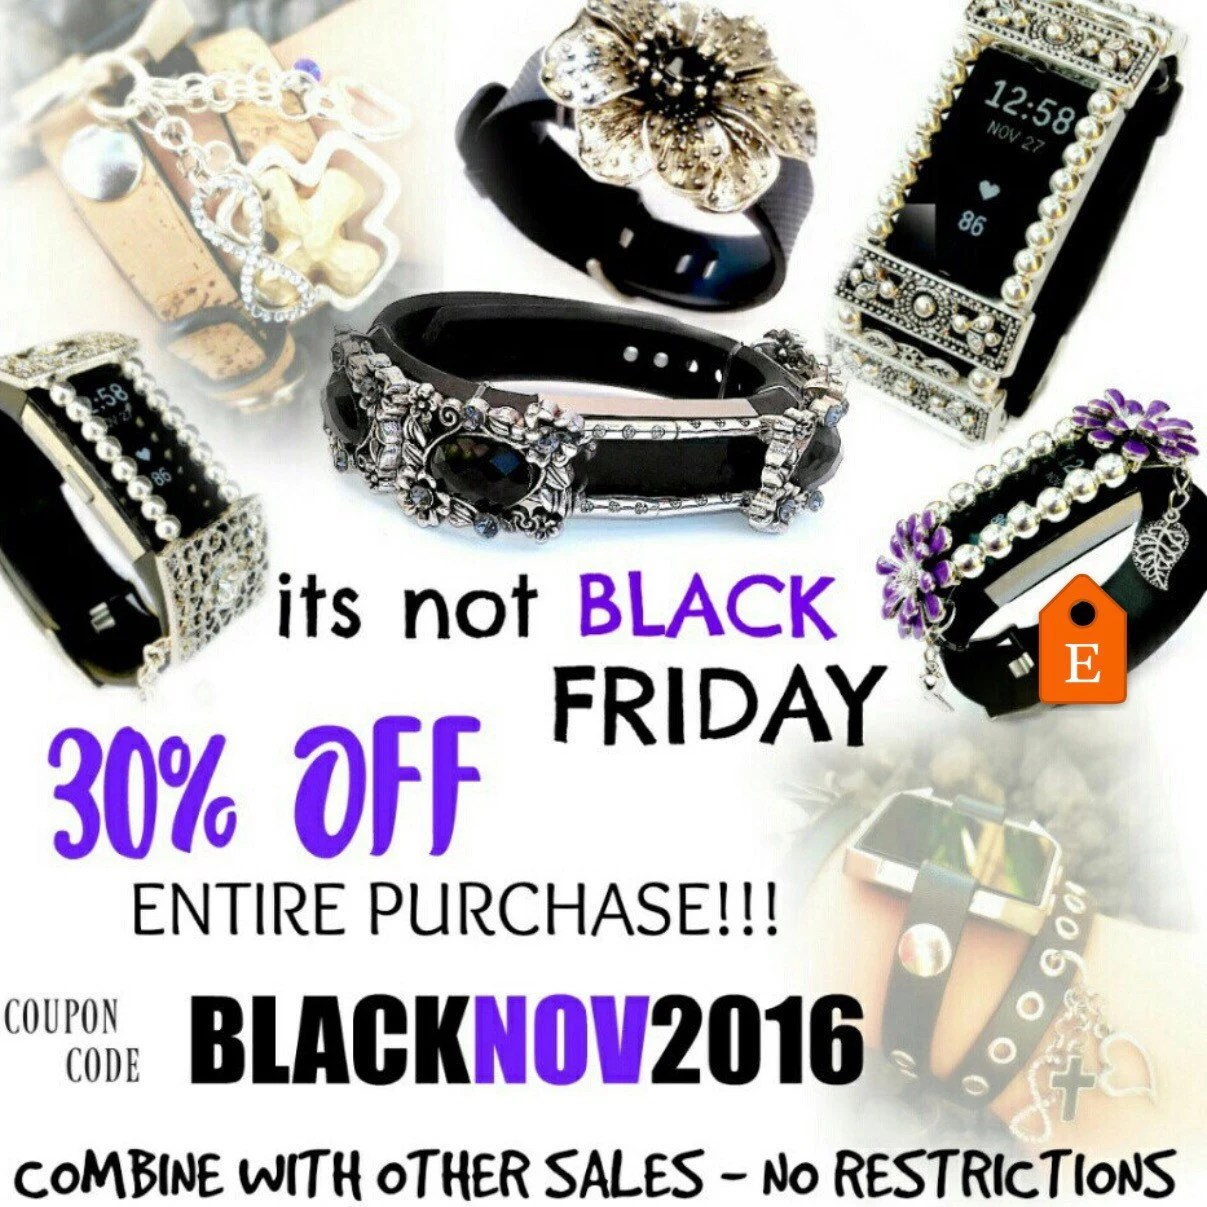 Teppiche Black Friday Updates From Laurelsloop On Etsy